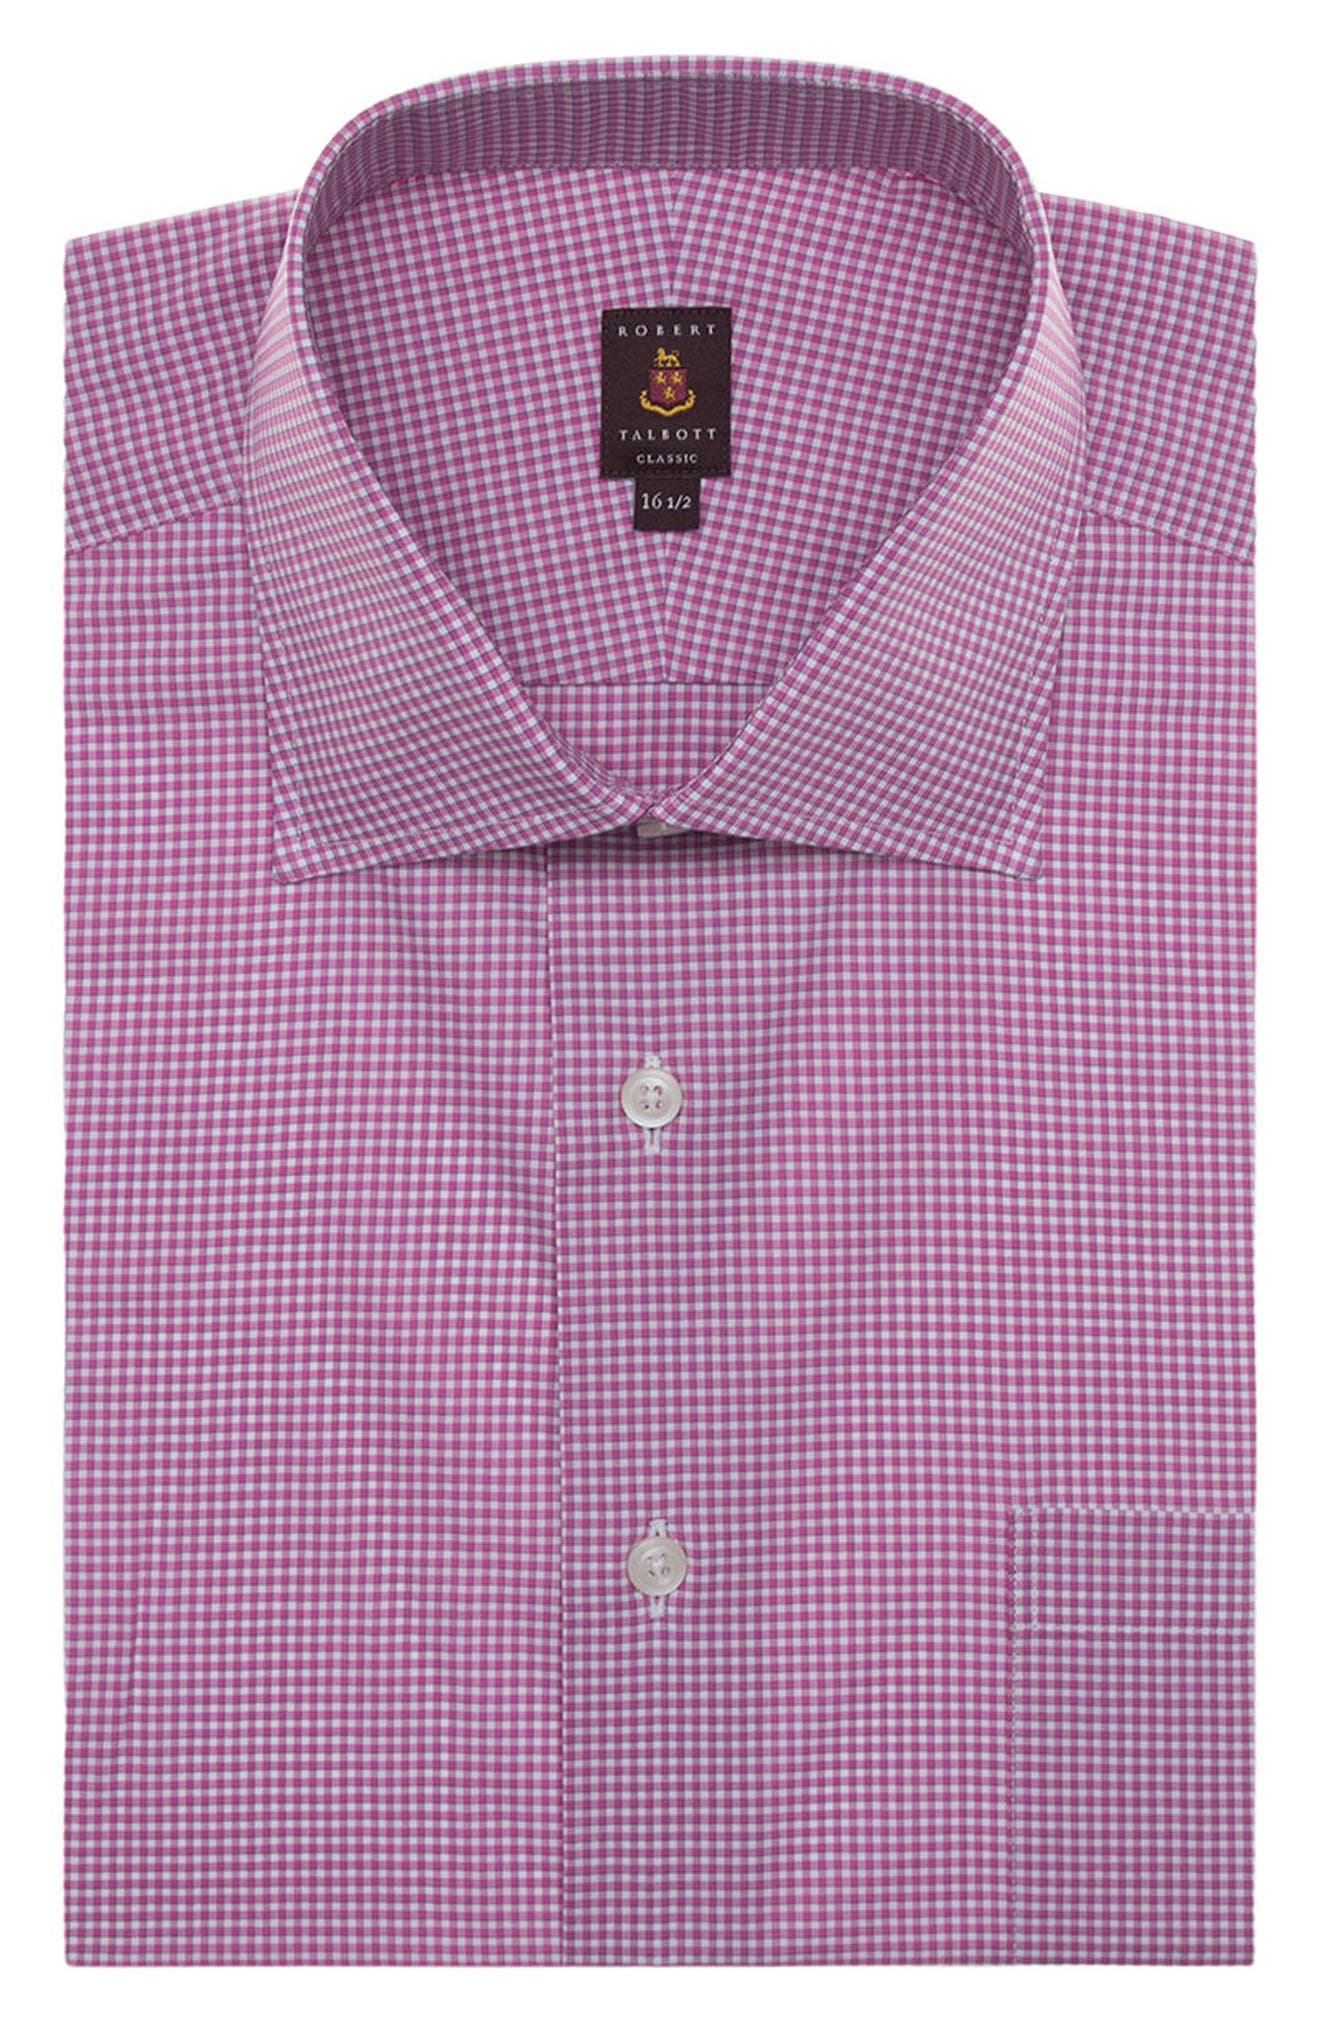 Tailored Fit Check Dress Shirt,                             Main thumbnail 1, color,                             500